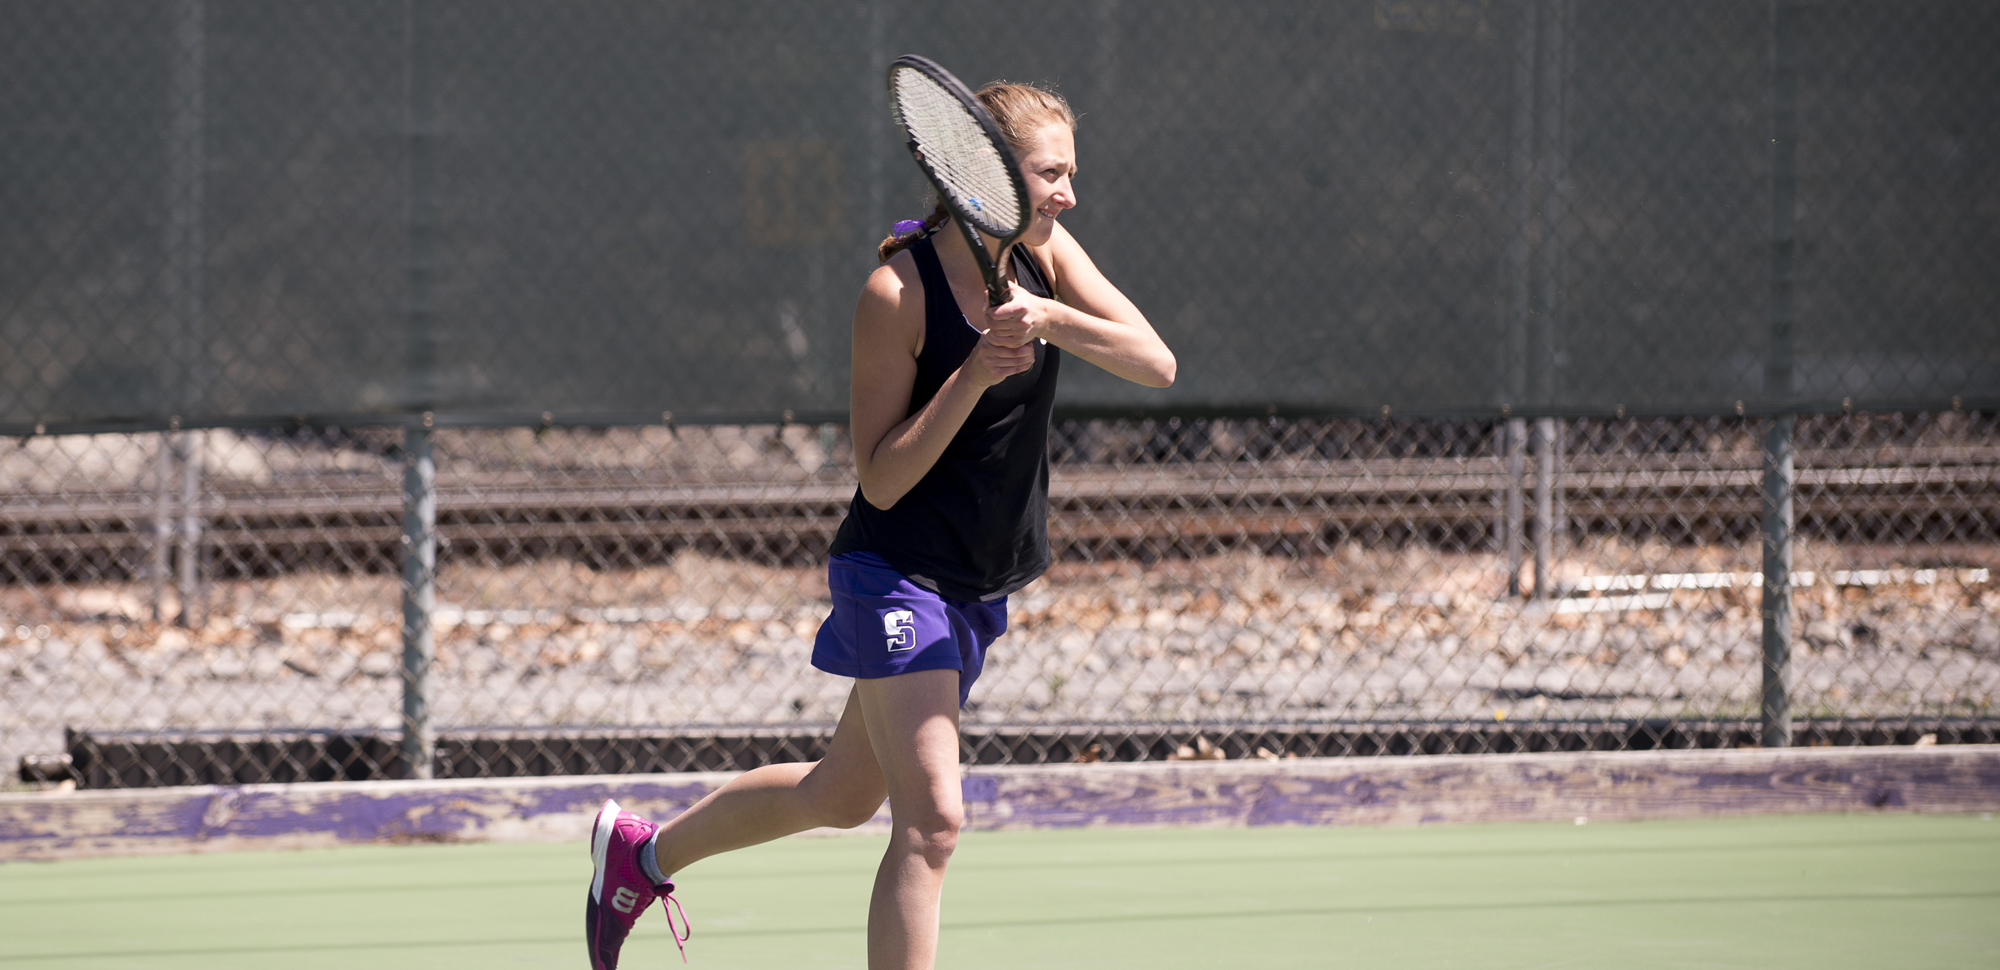 Sophomore Natasha DeNunzio was one of four Royals with wins in both singles and doubles on Tuesday.